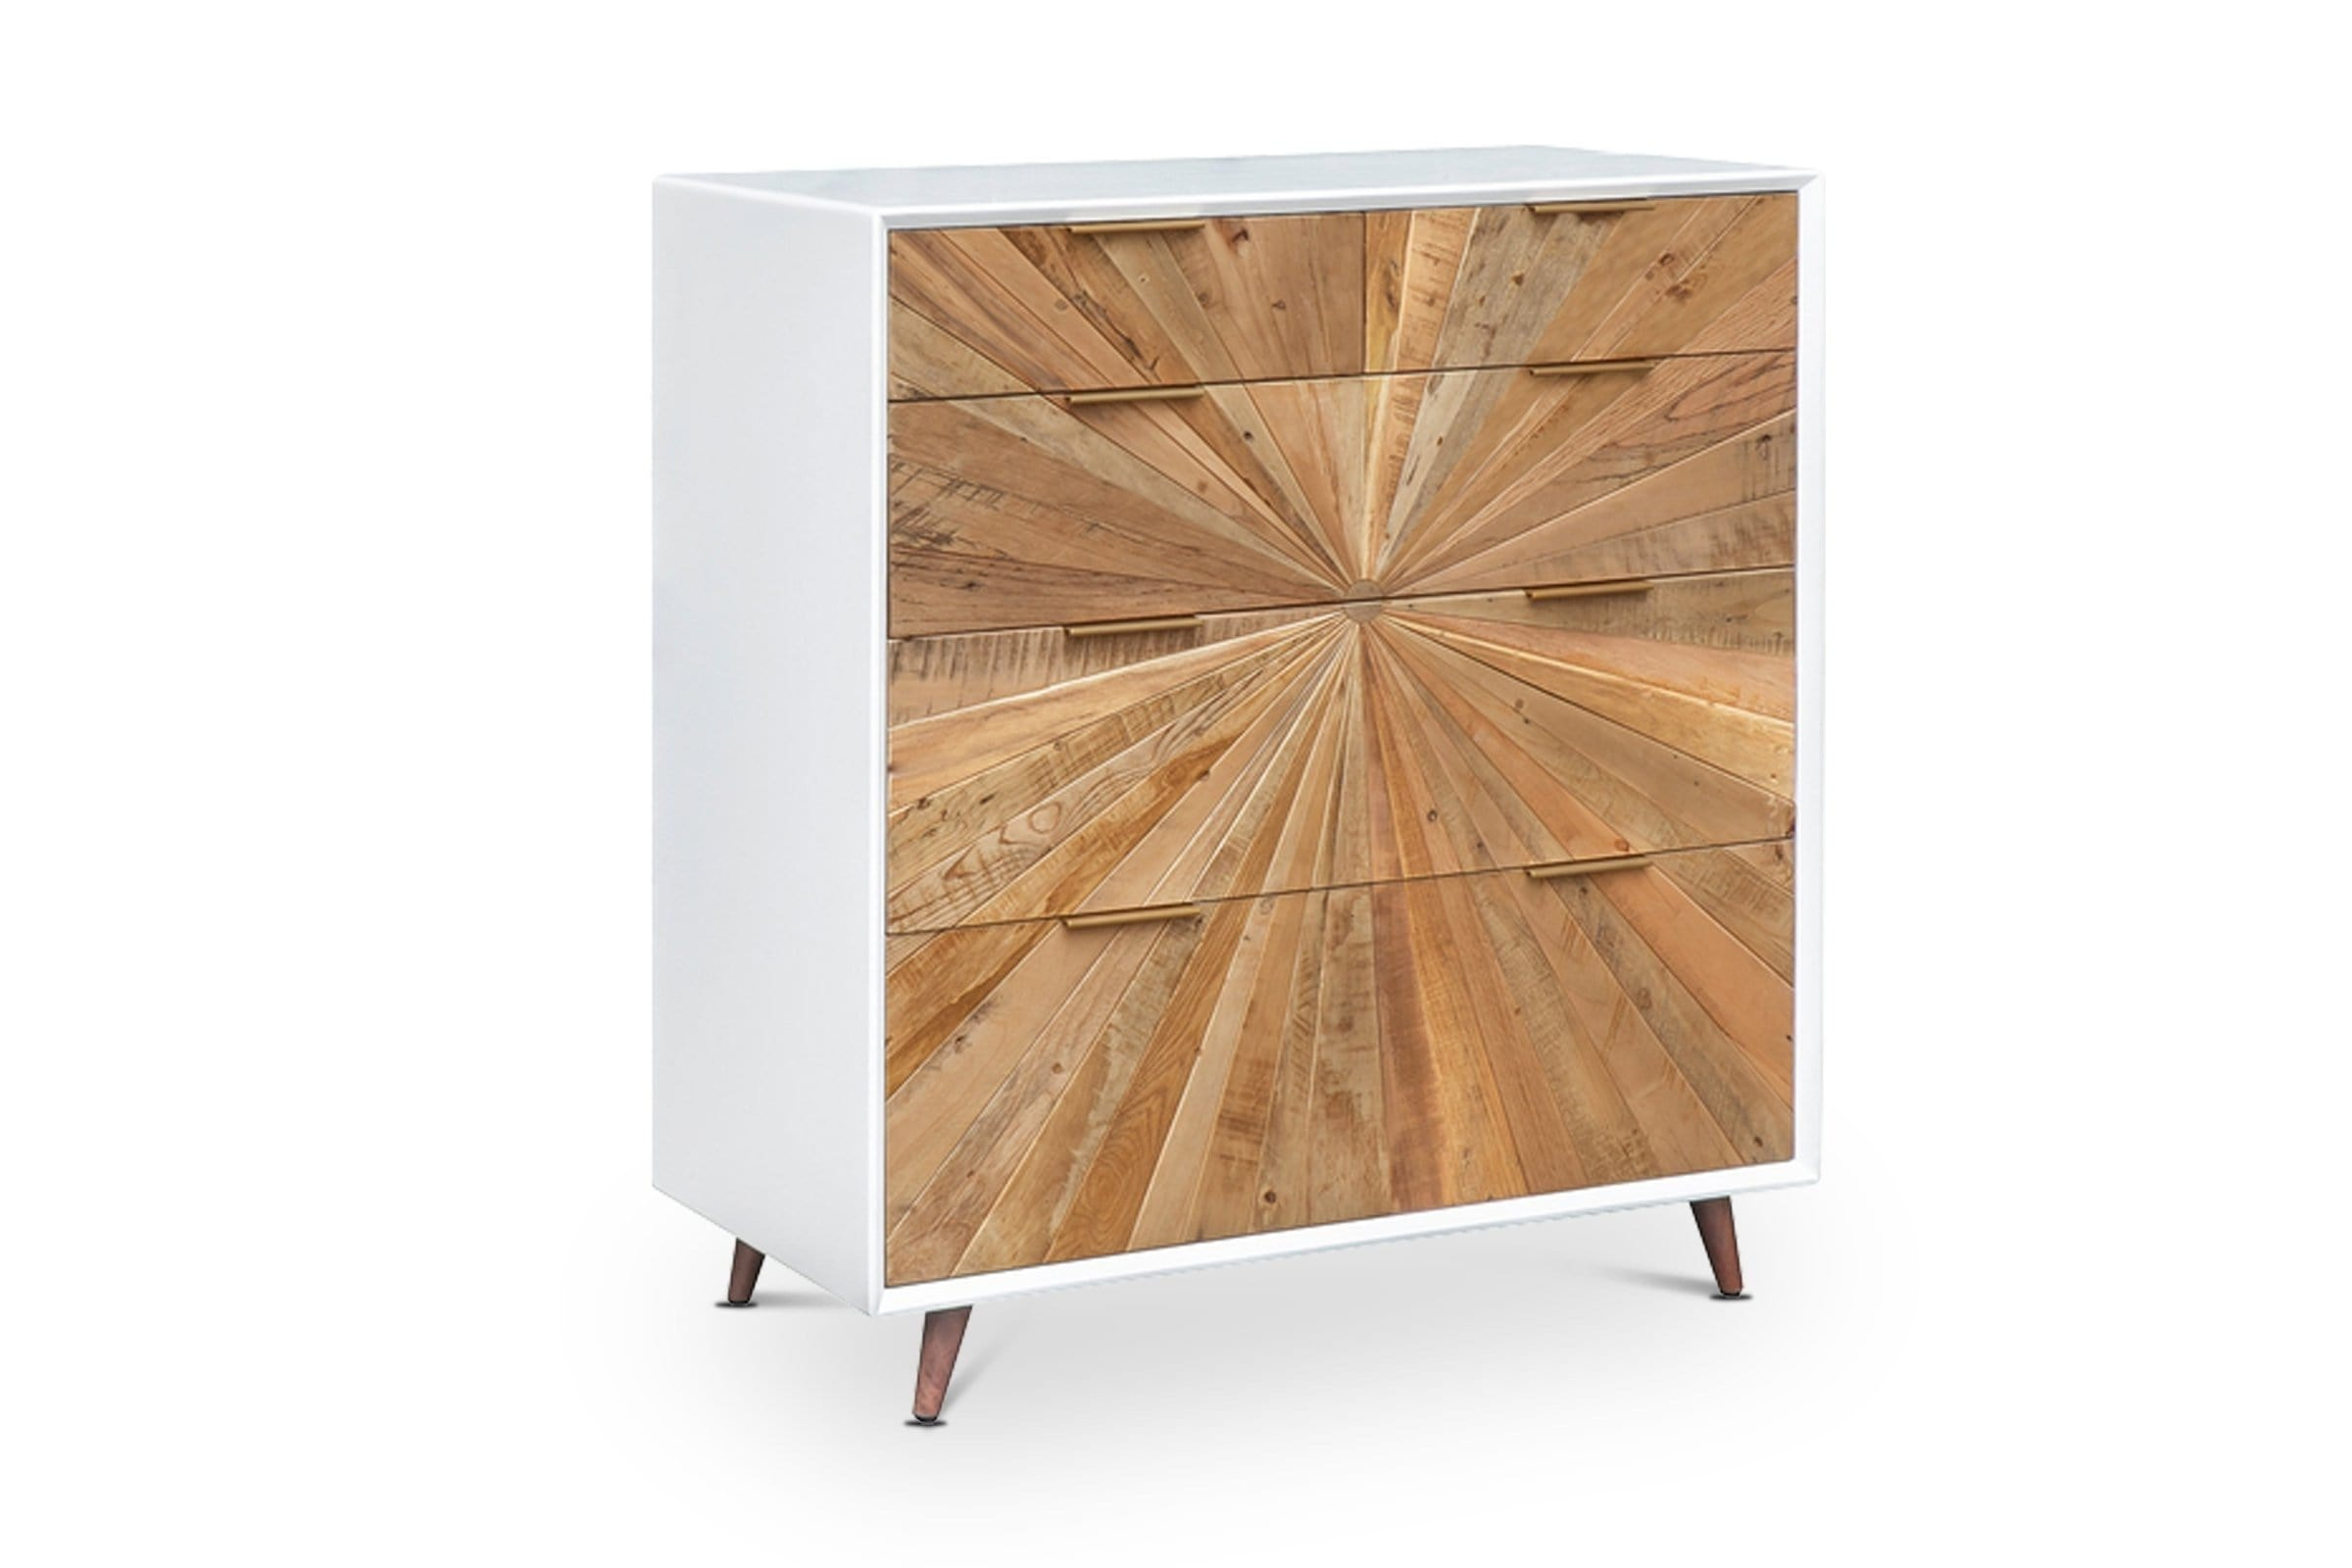 Solara 5 Drawer Chest - Bedroom Furniture sold by Apt2B